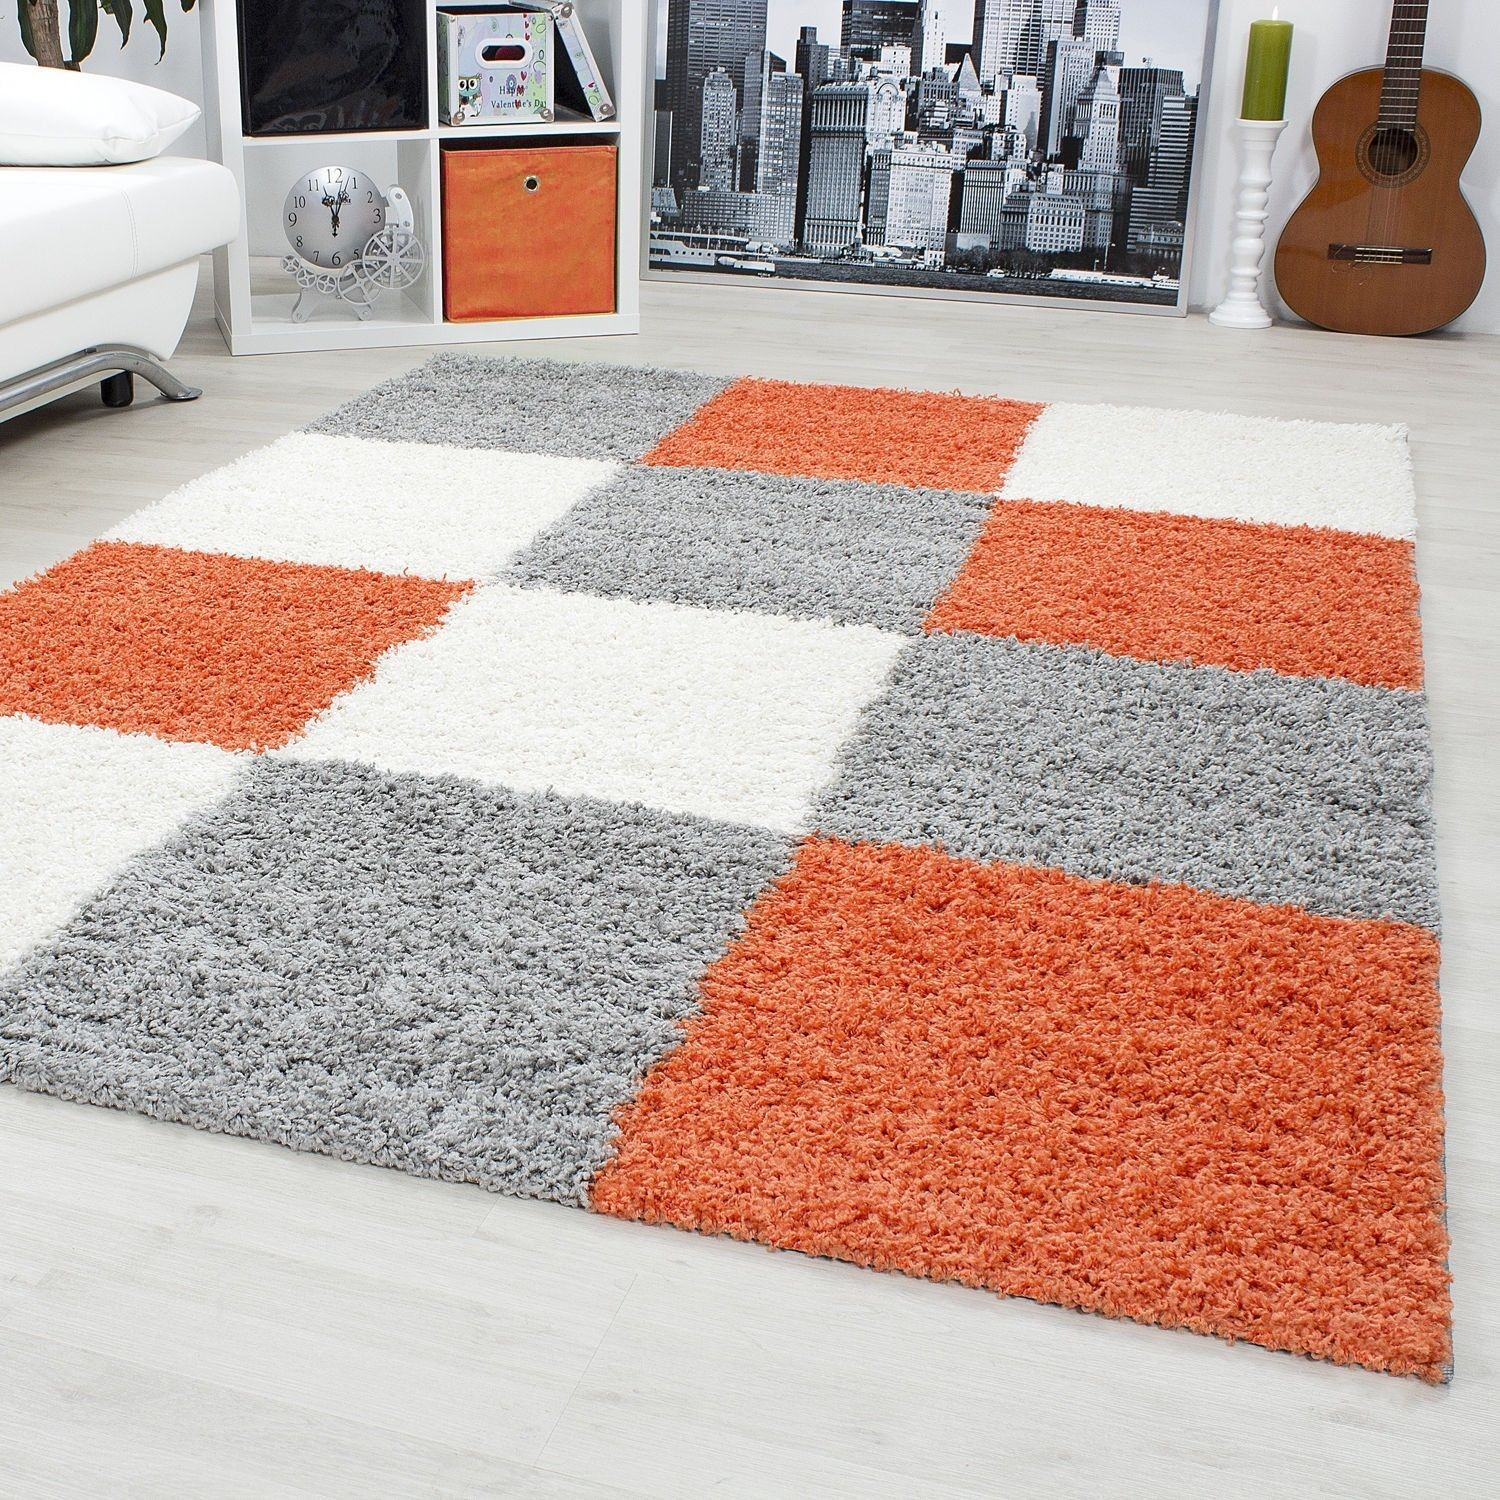 tapis shaggy longues m ches orange gris cream hautes carreaux pas cher. Black Bedroom Furniture Sets. Home Design Ideas